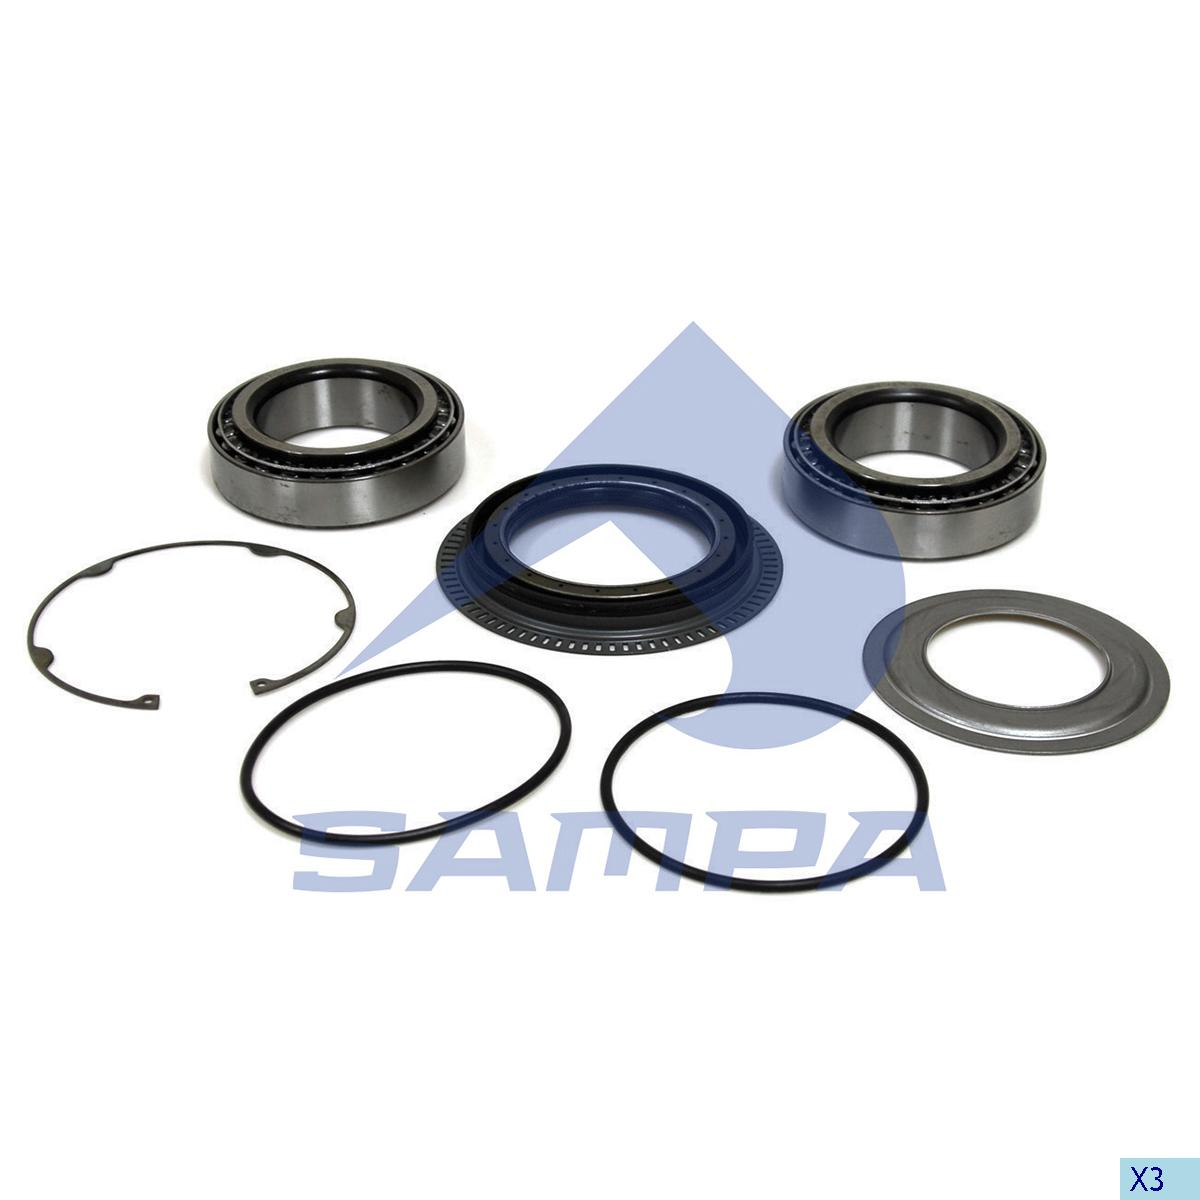 Repair Kit, Wheel Hub, Smb, Power Unit